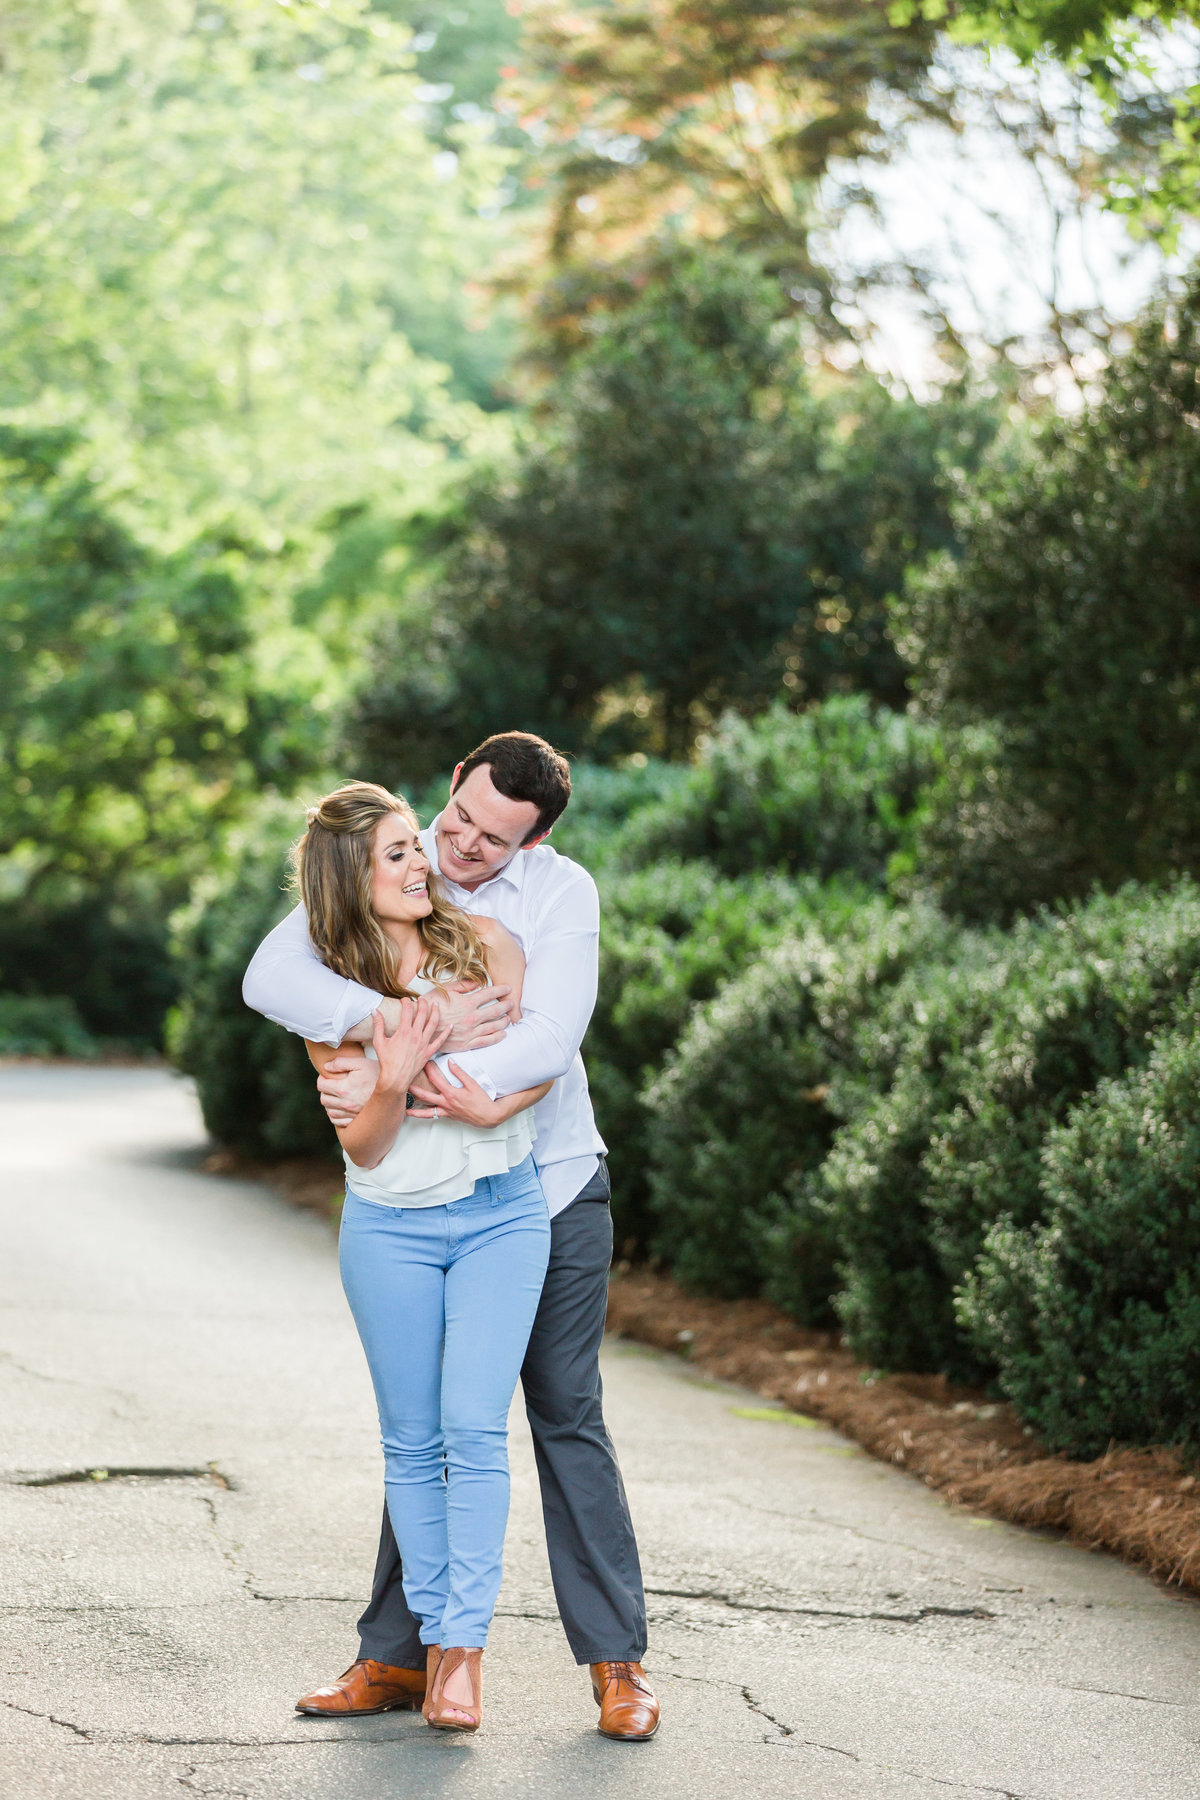 Noelle and Gregg Engaged-Samantha Laffoon Photography-178